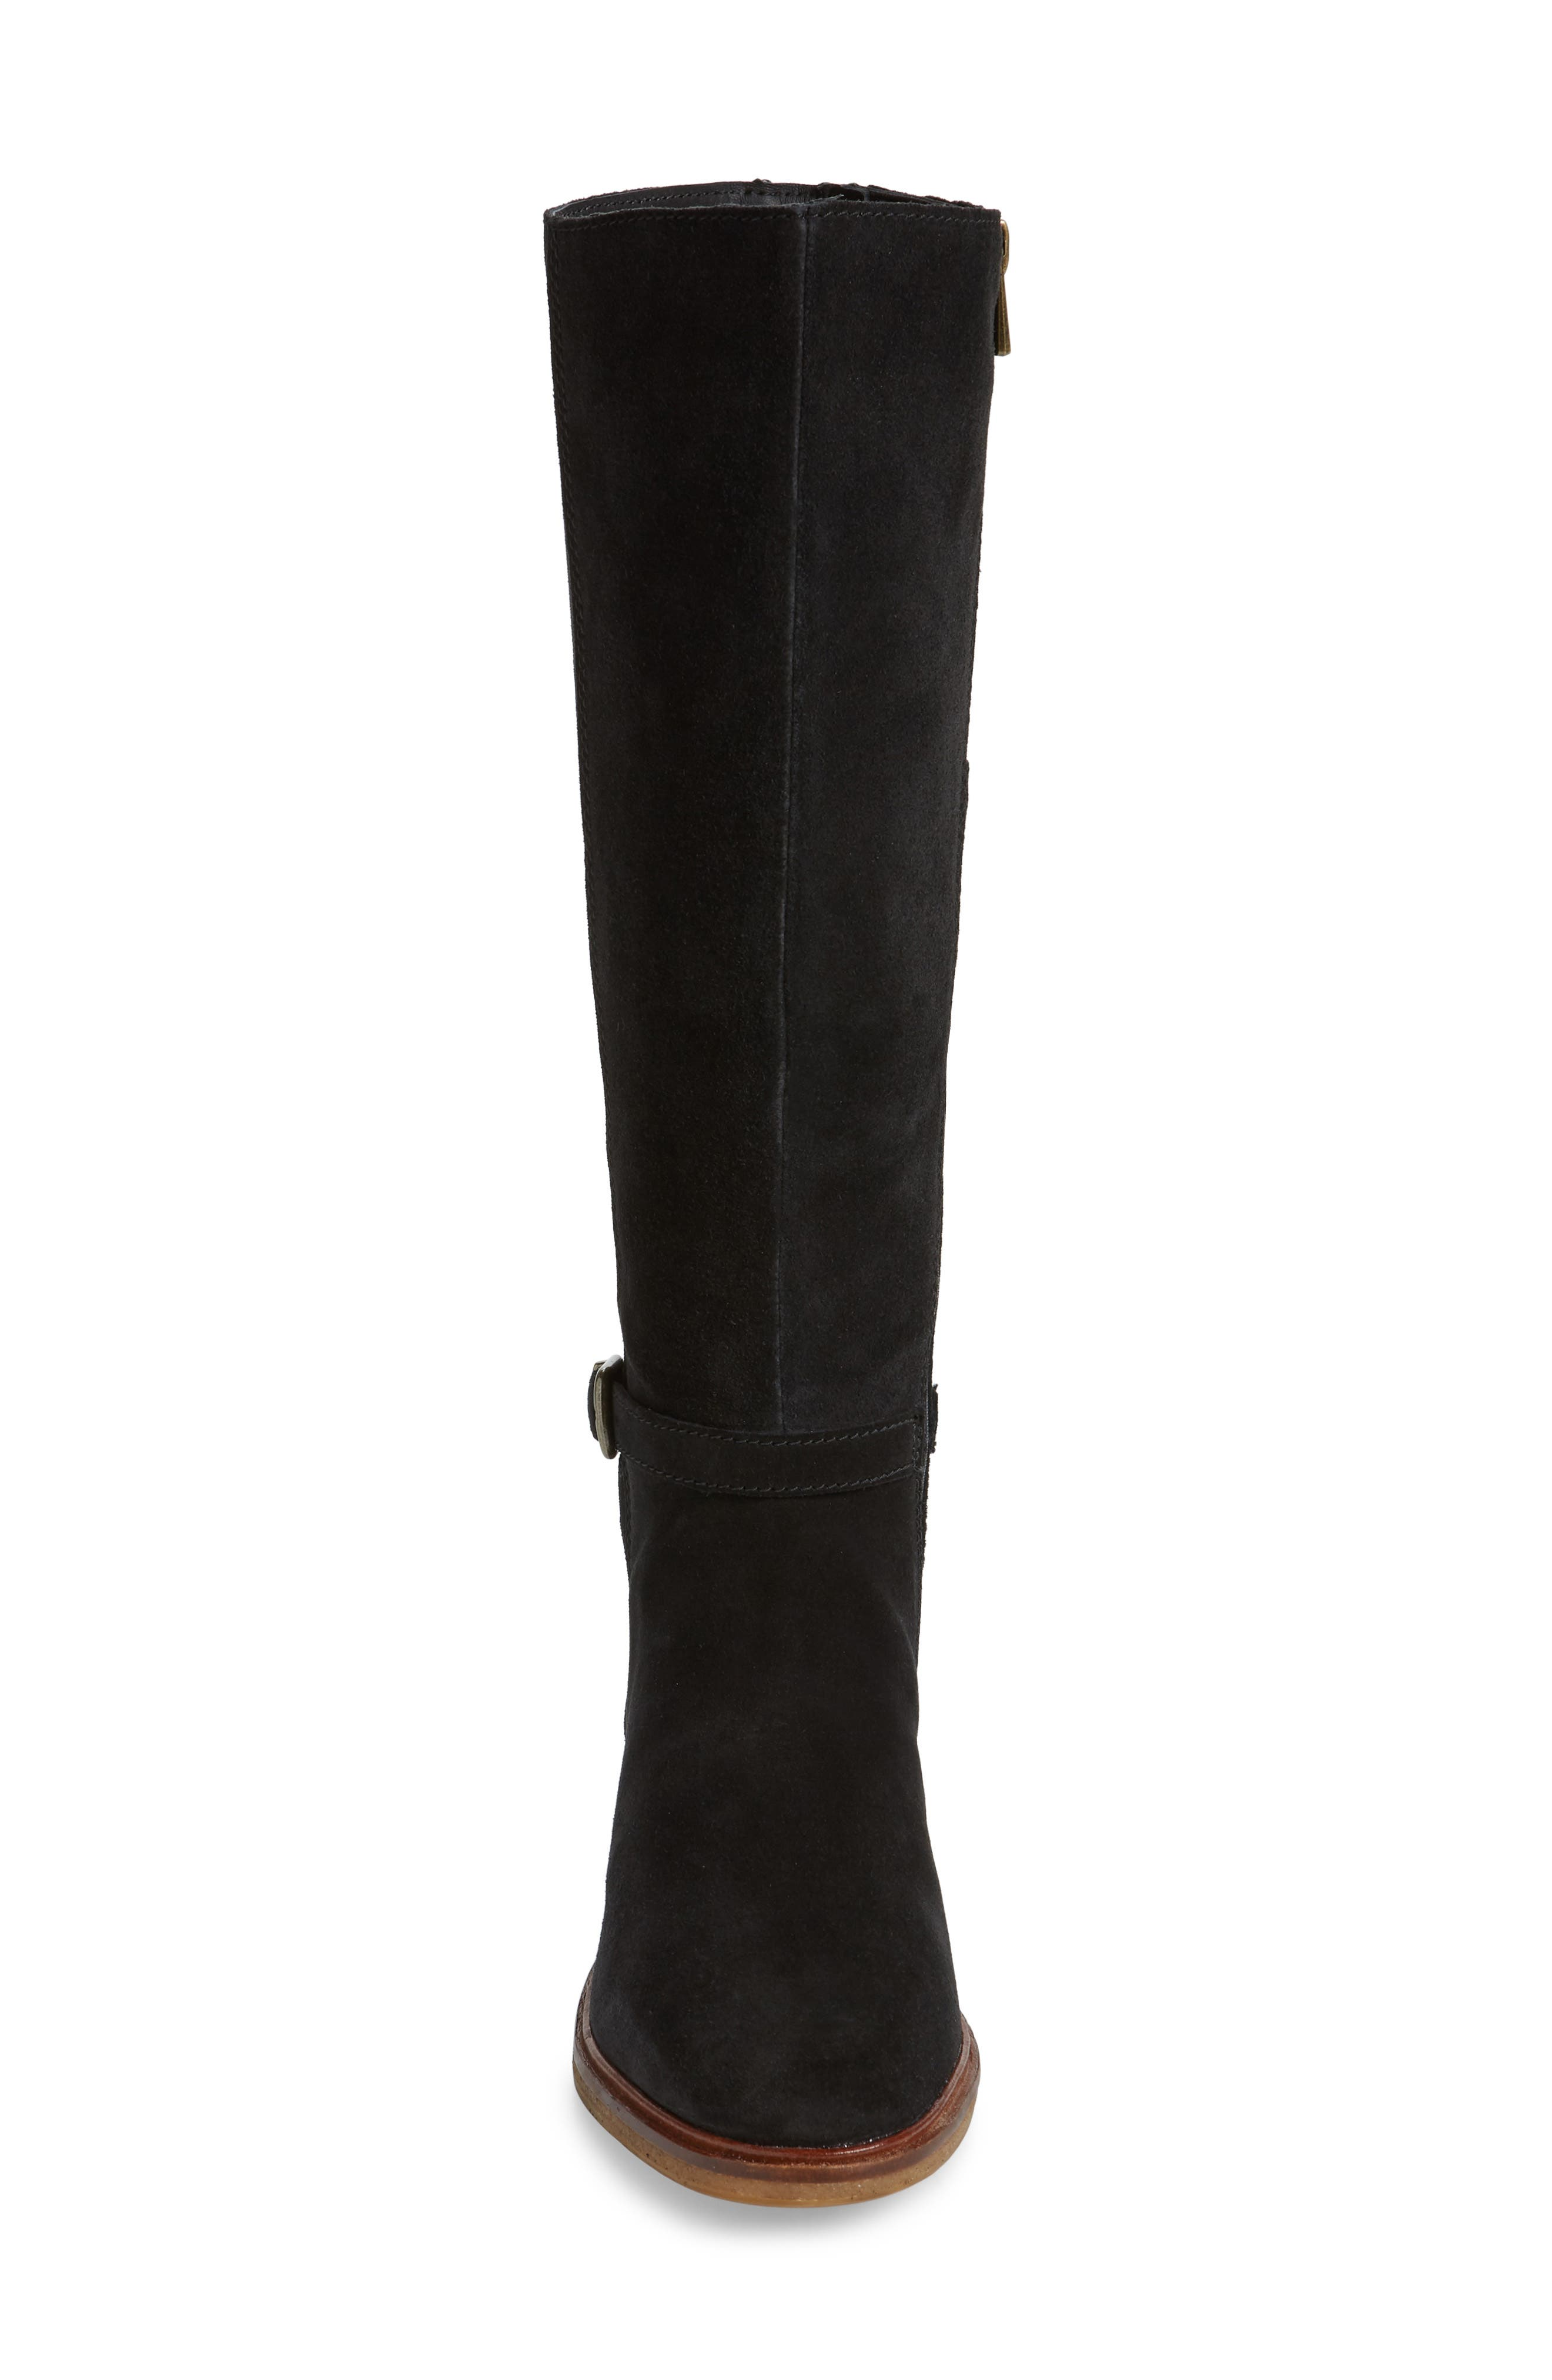 Clarkdale Clad Boot,                             Alternate thumbnail 4, color,                             BLACK SUEDE